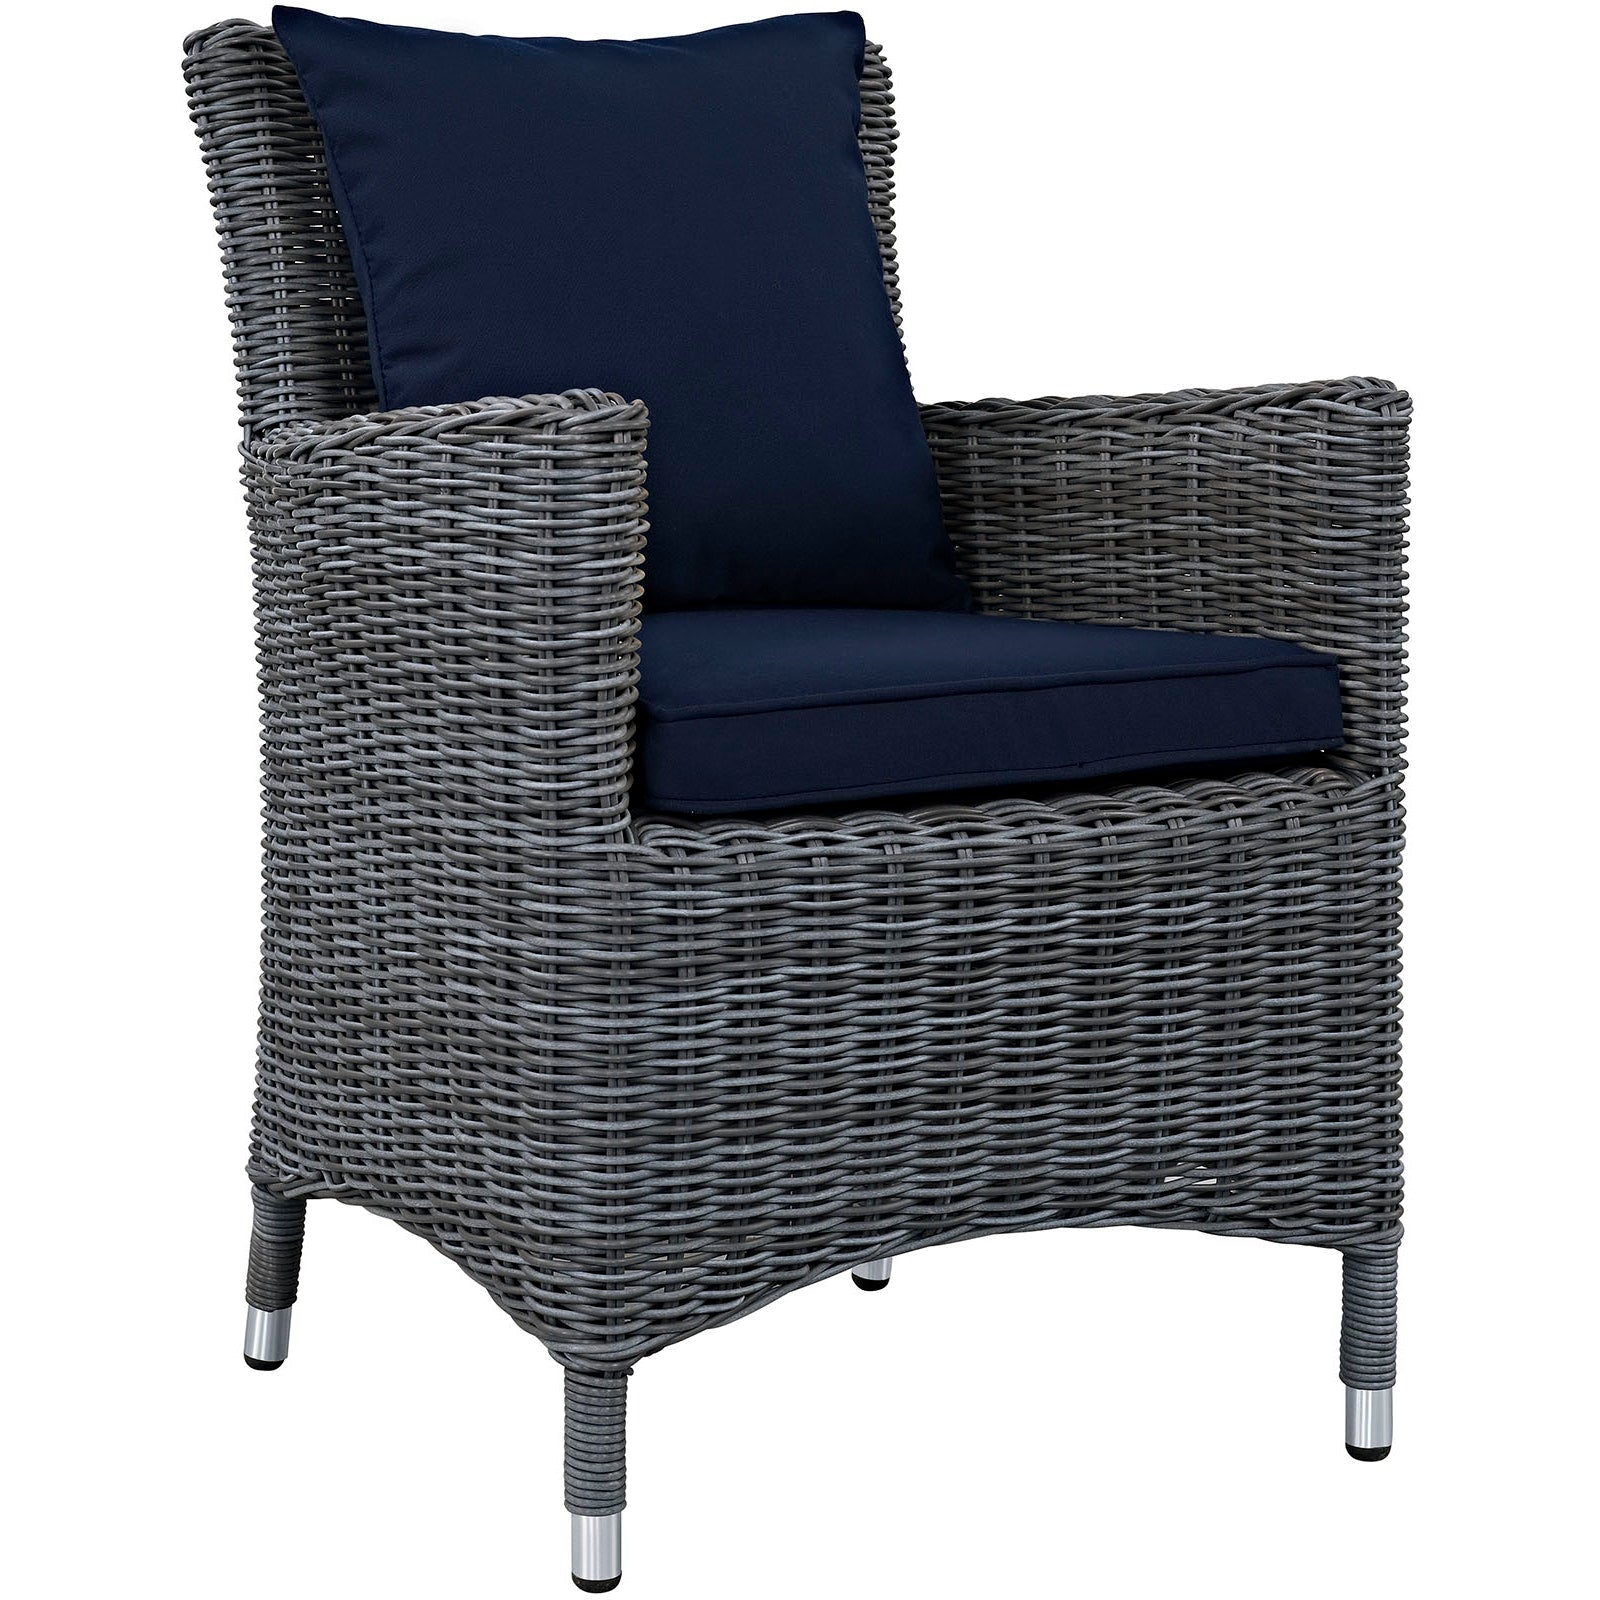 Summon Dining Outdoor Patio Sunbrella® Armchair - Canvas Navy